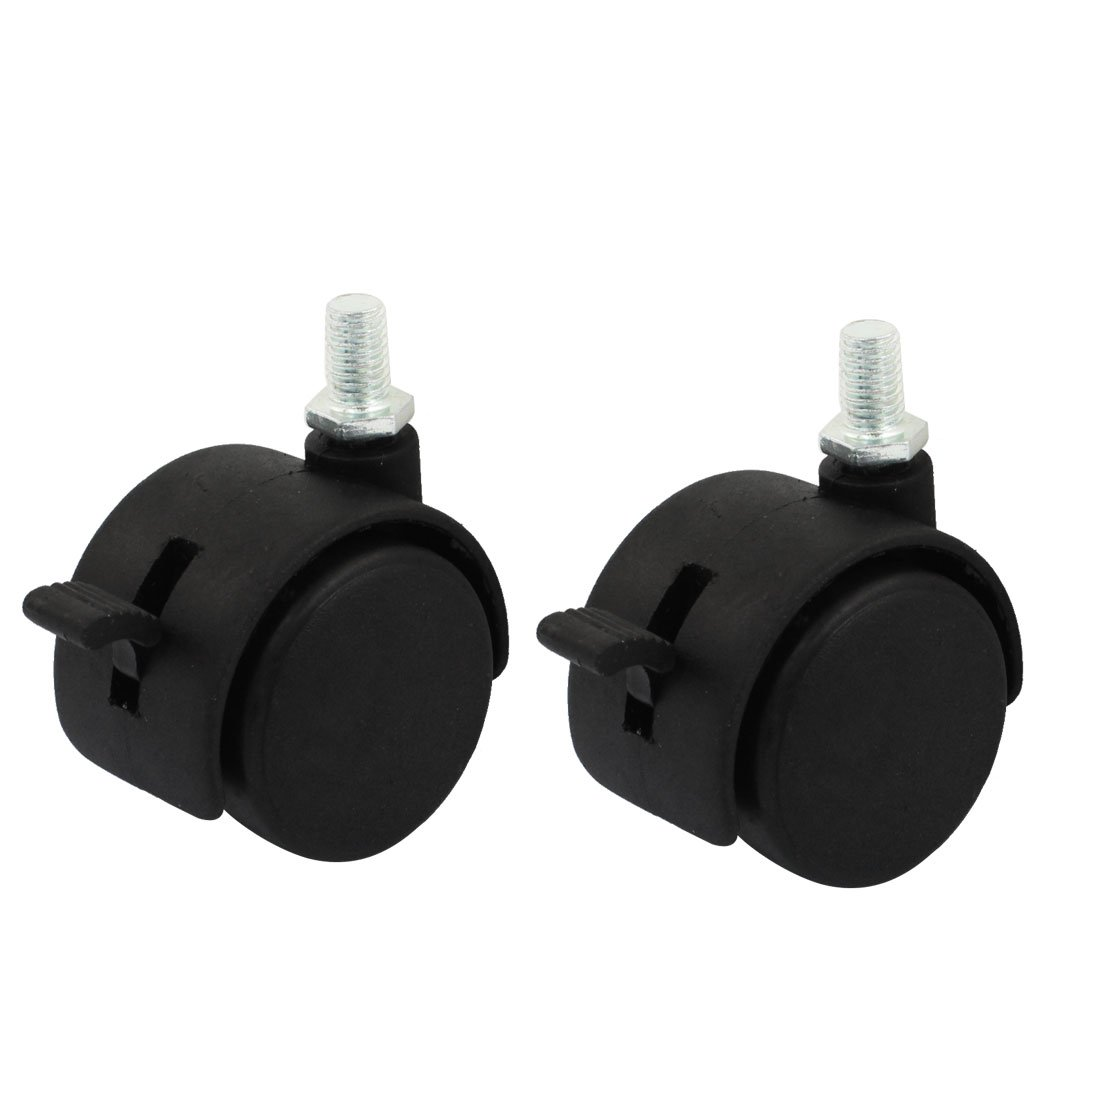 Uxcell a14072300ux0399 2pcs 7.5mm Thread 1.5 Round Double Wheel Design Swivel Brake Caster